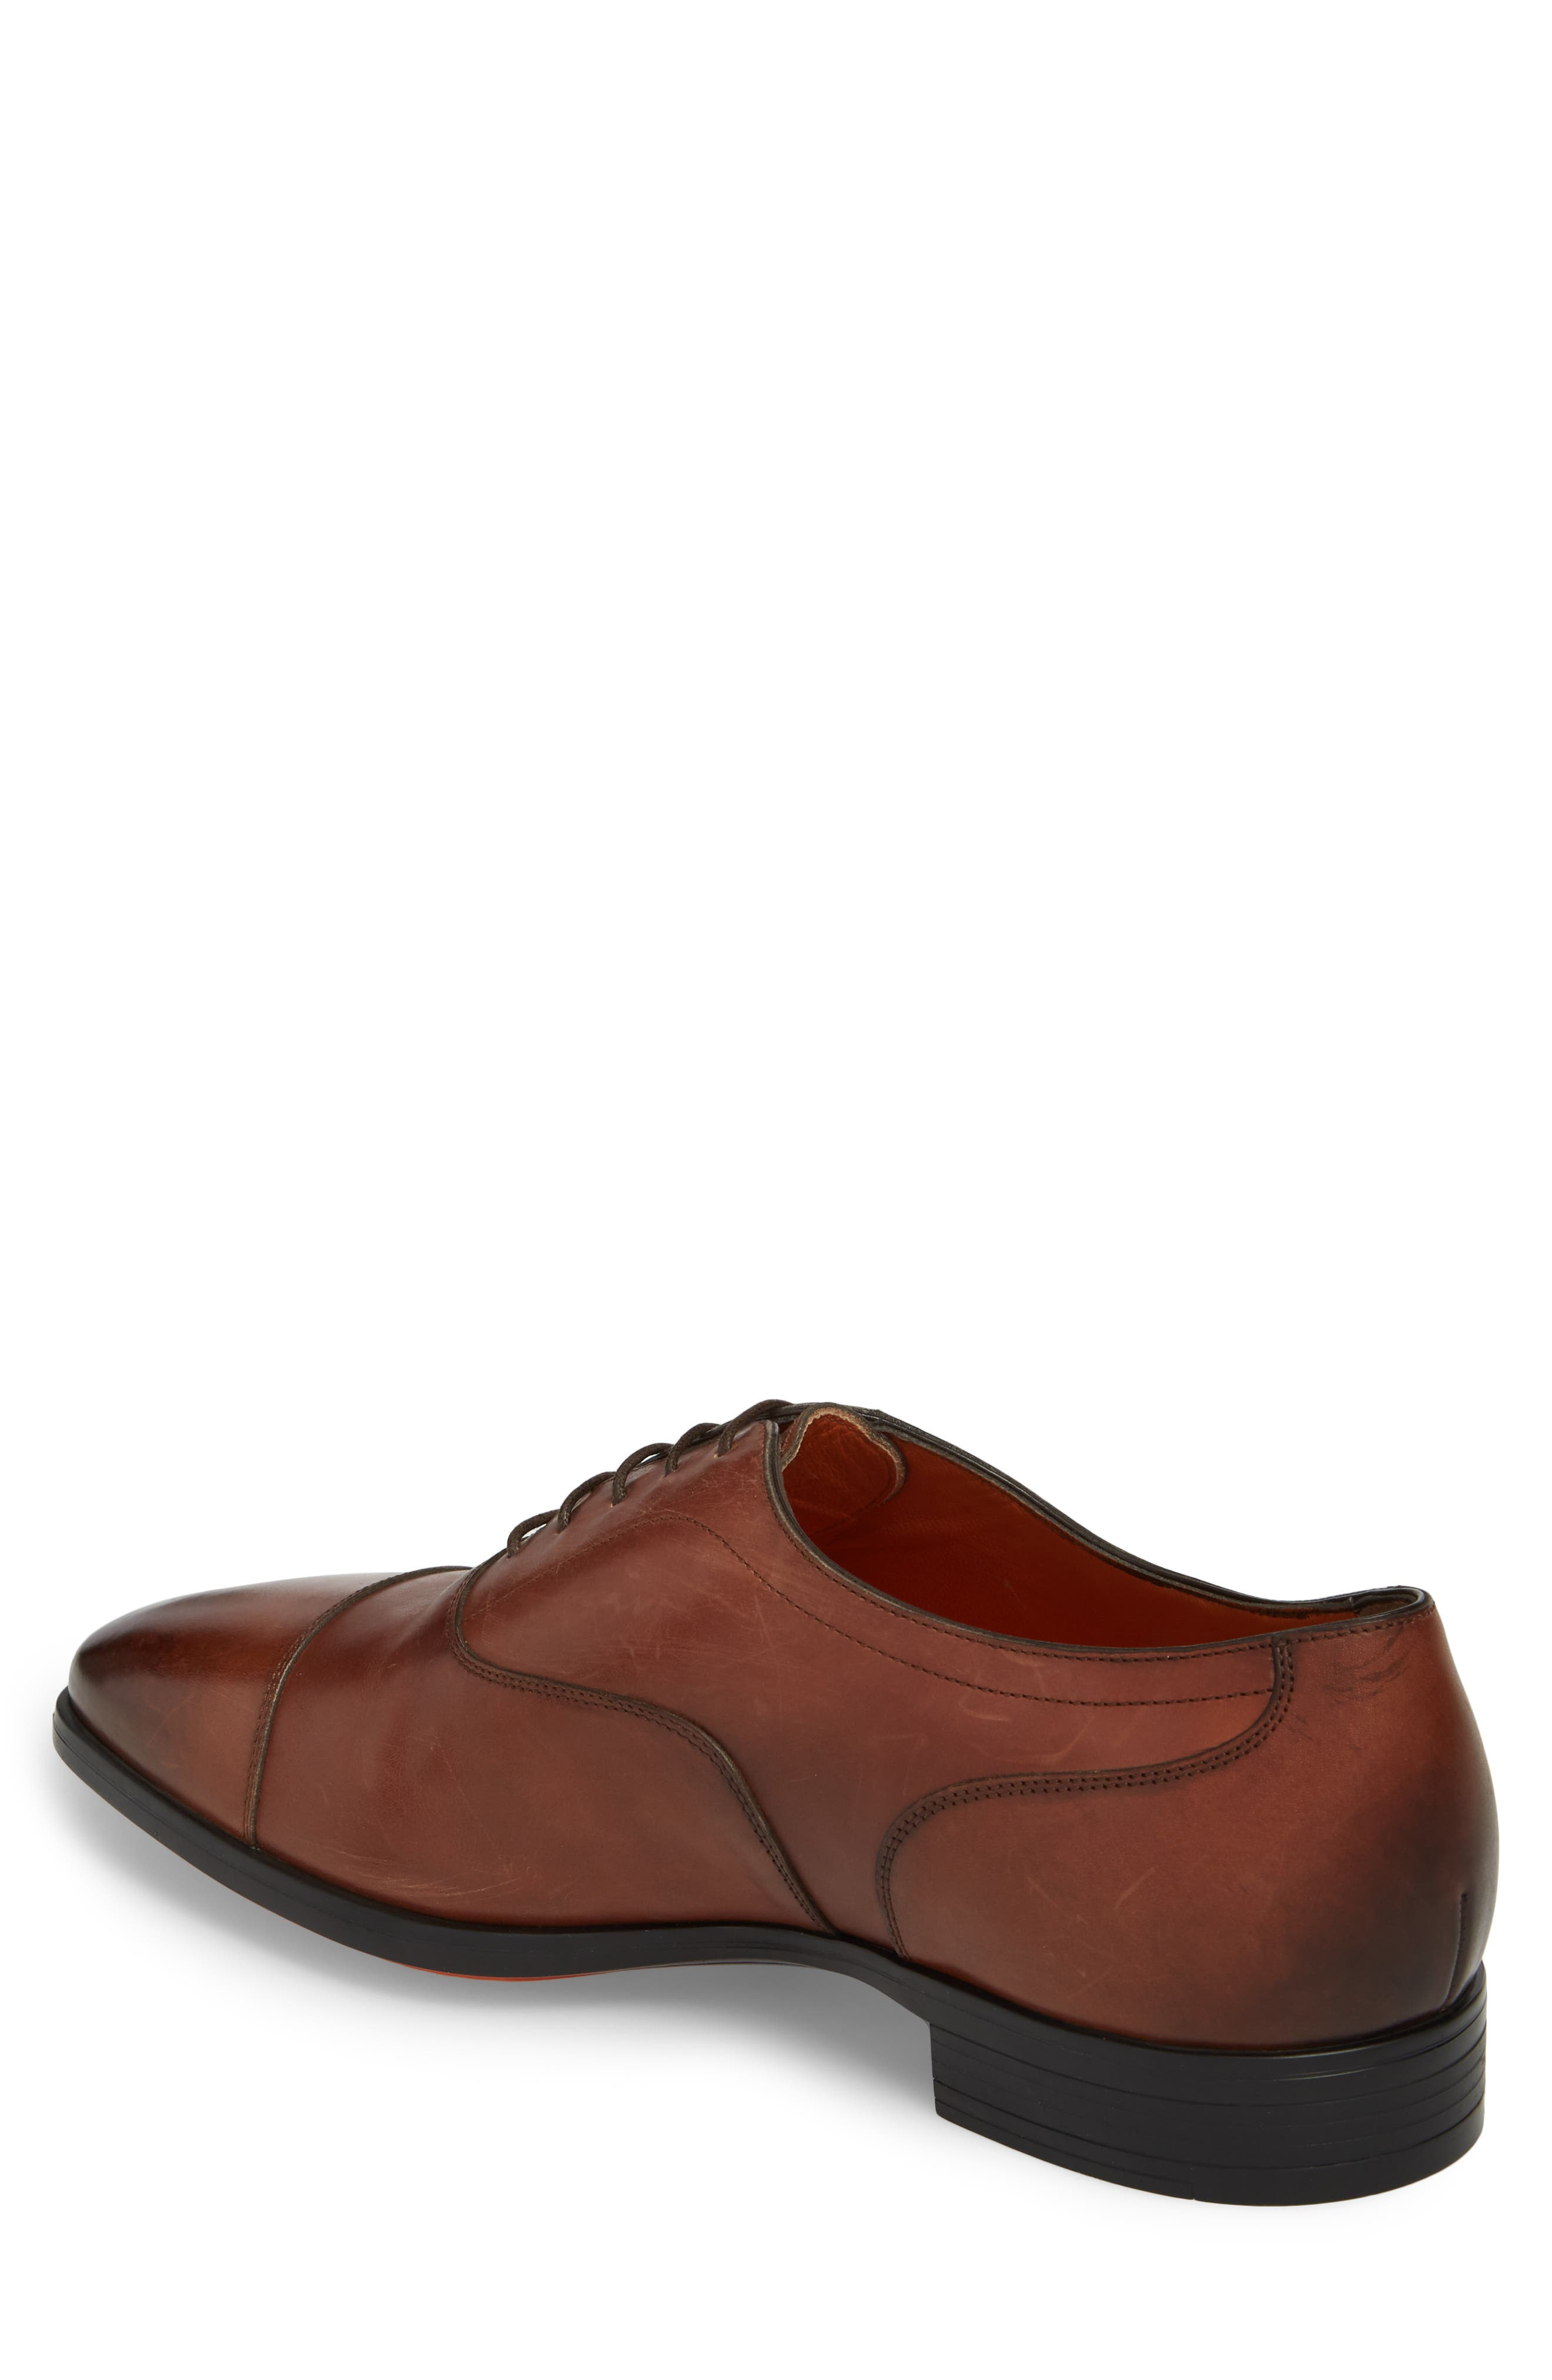 Eamon Cap Toe,                             Alternate thumbnail 2, color,                             Brown